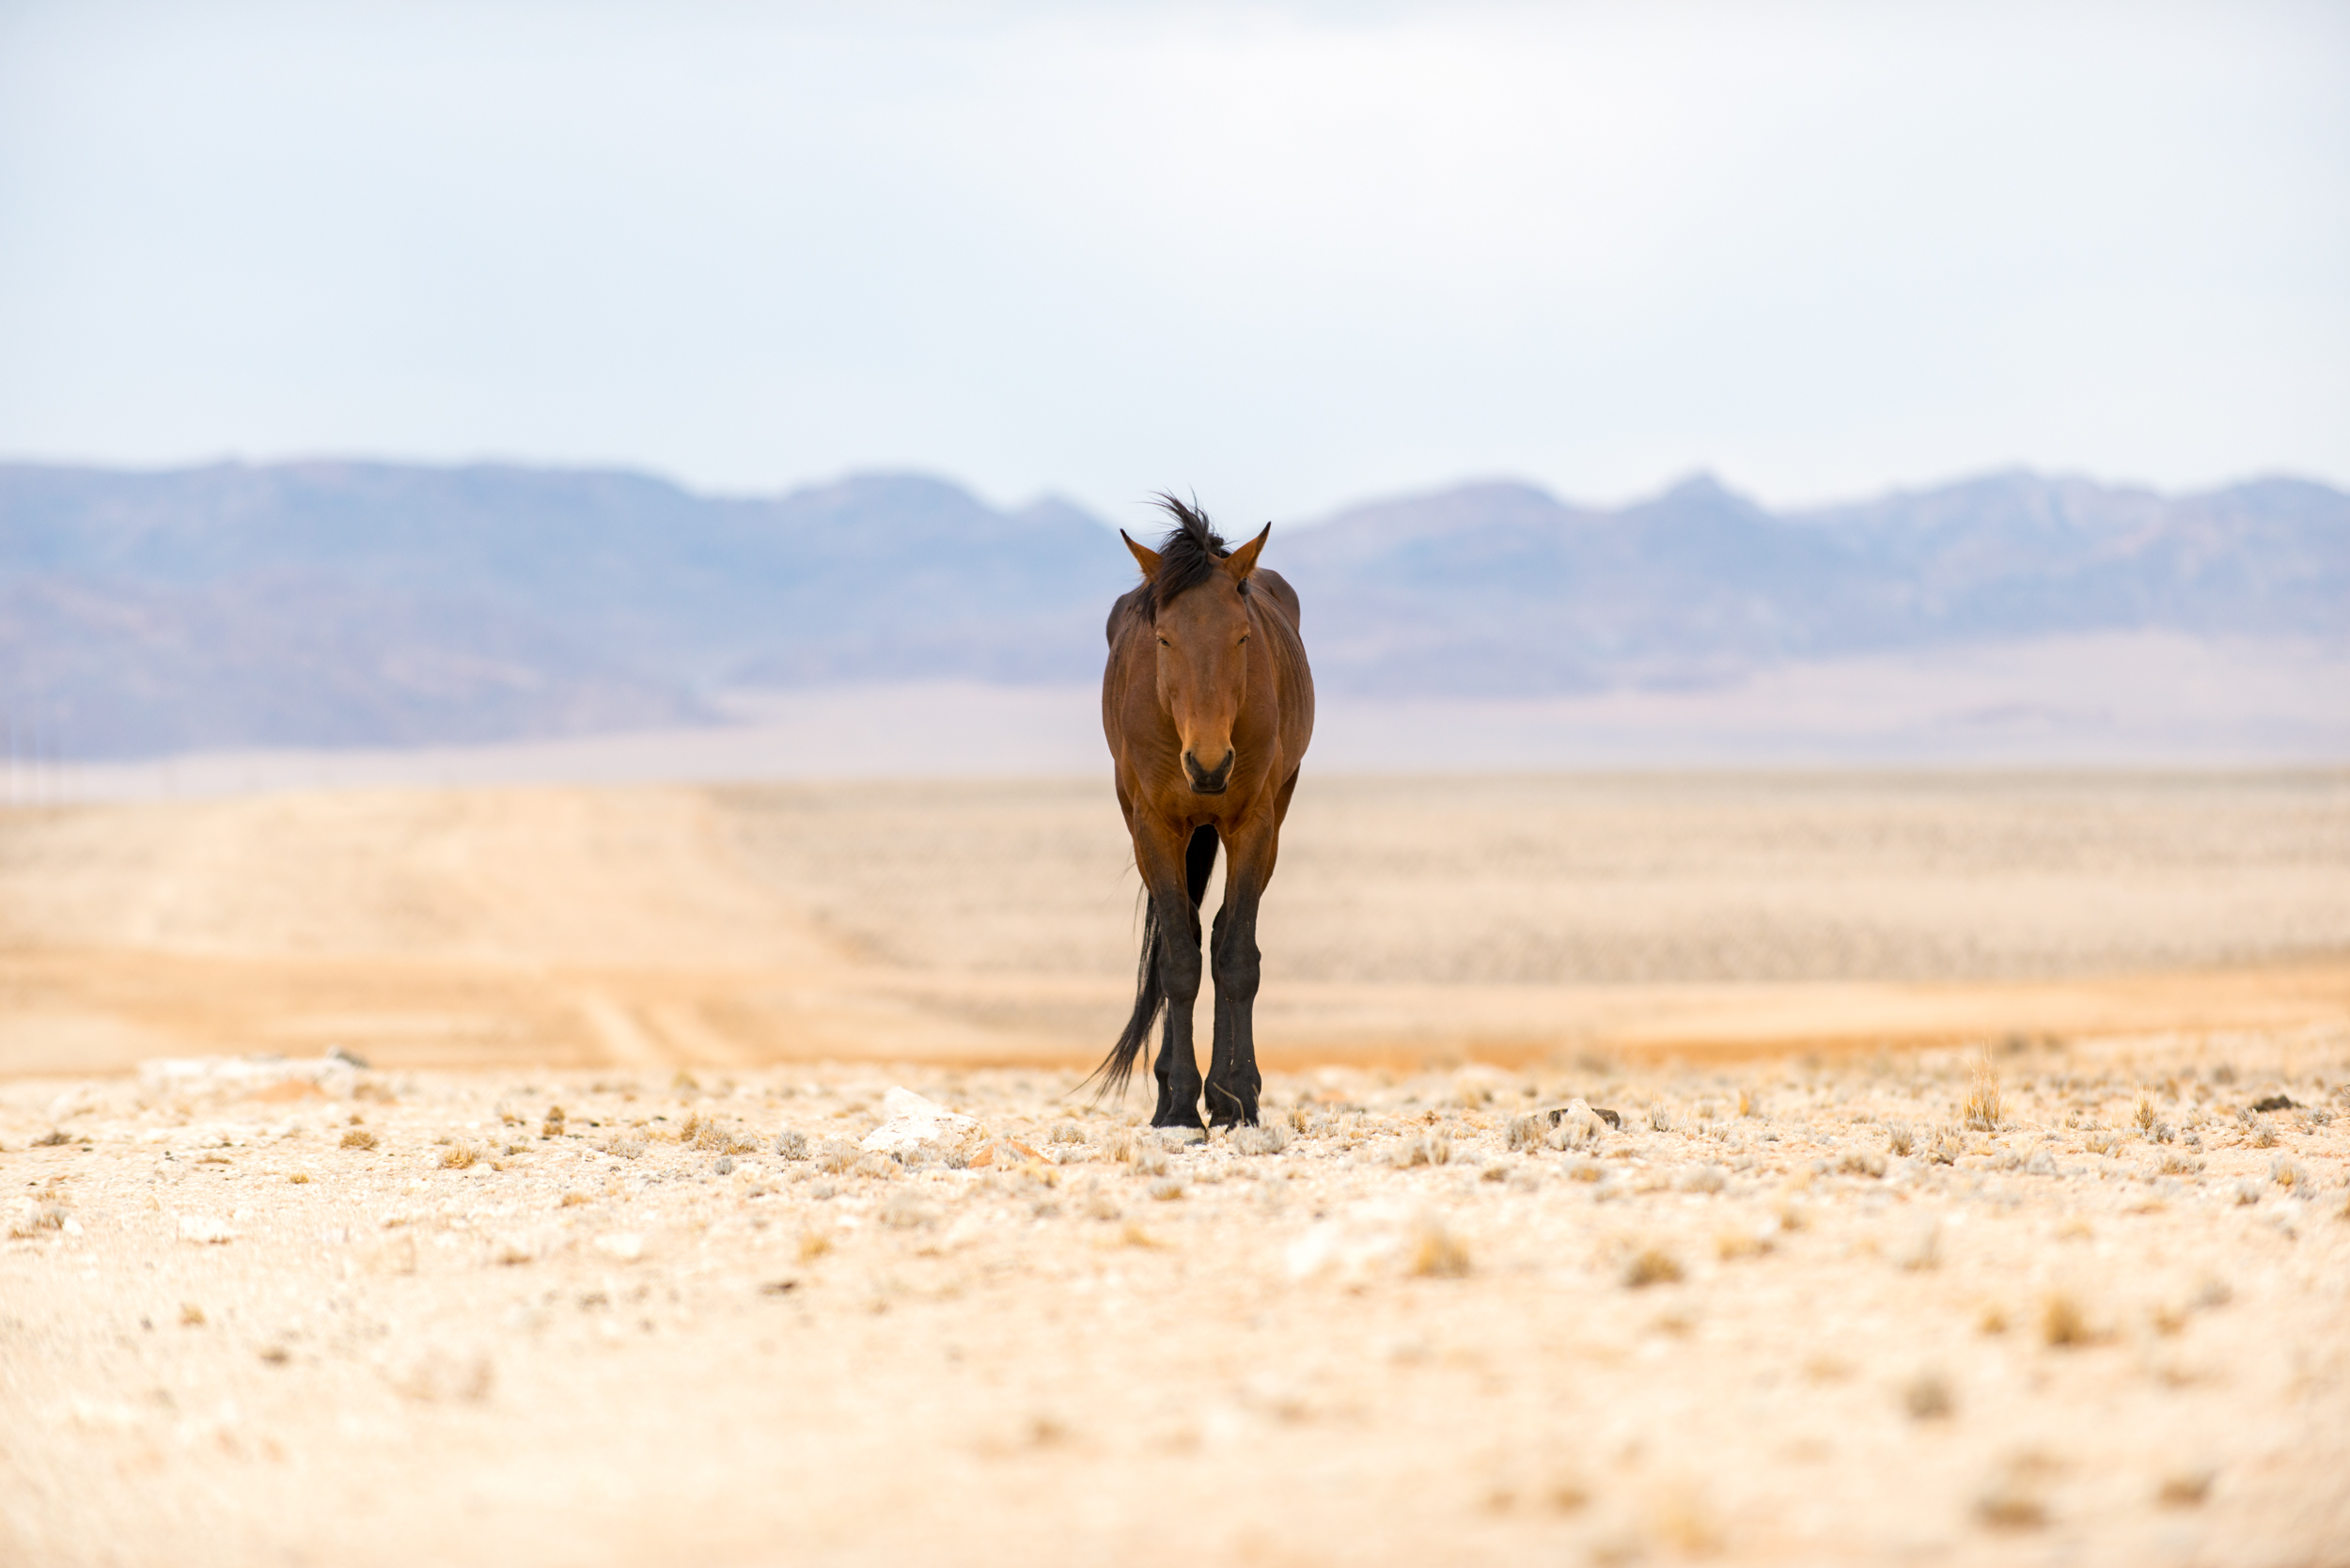 Namibia    A wild horse on the dusty plains near Aus in southern Namibia. Between 90 - 150 wild horses roam free in this area